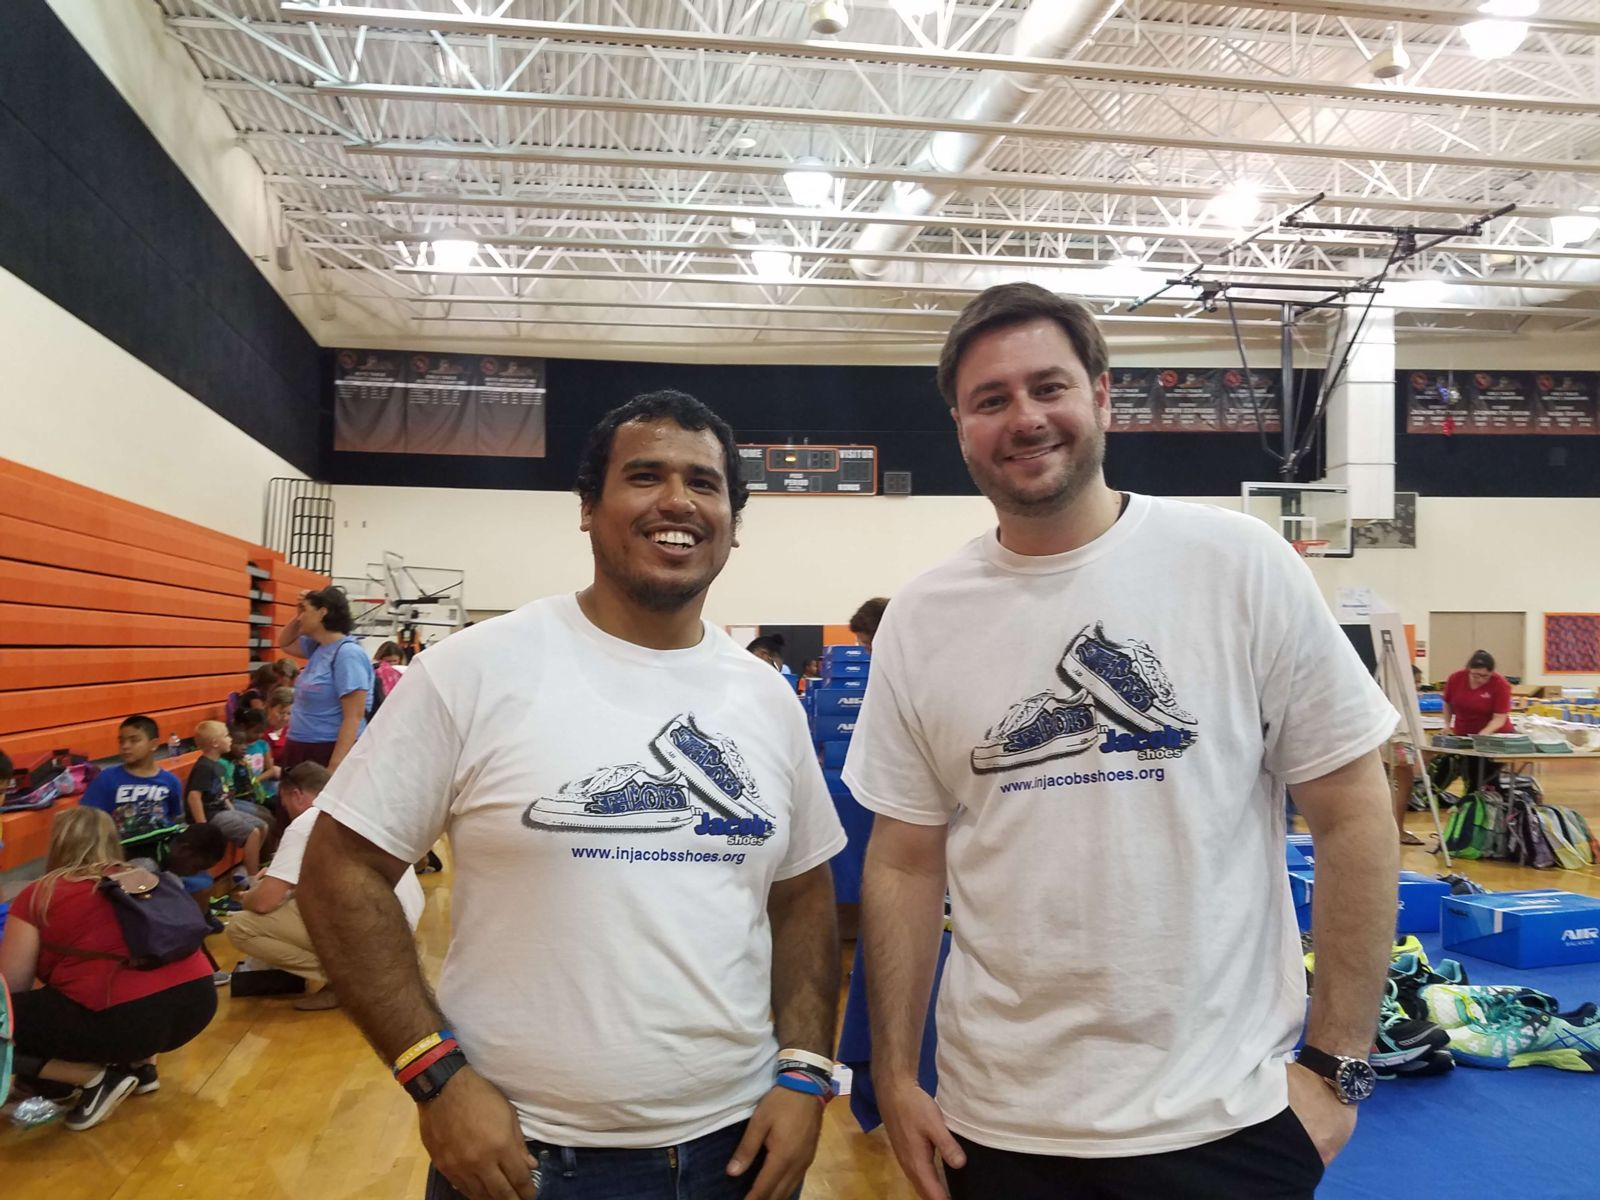 Adam and Walter pose for a photo at an In Jacob's Shoes community event